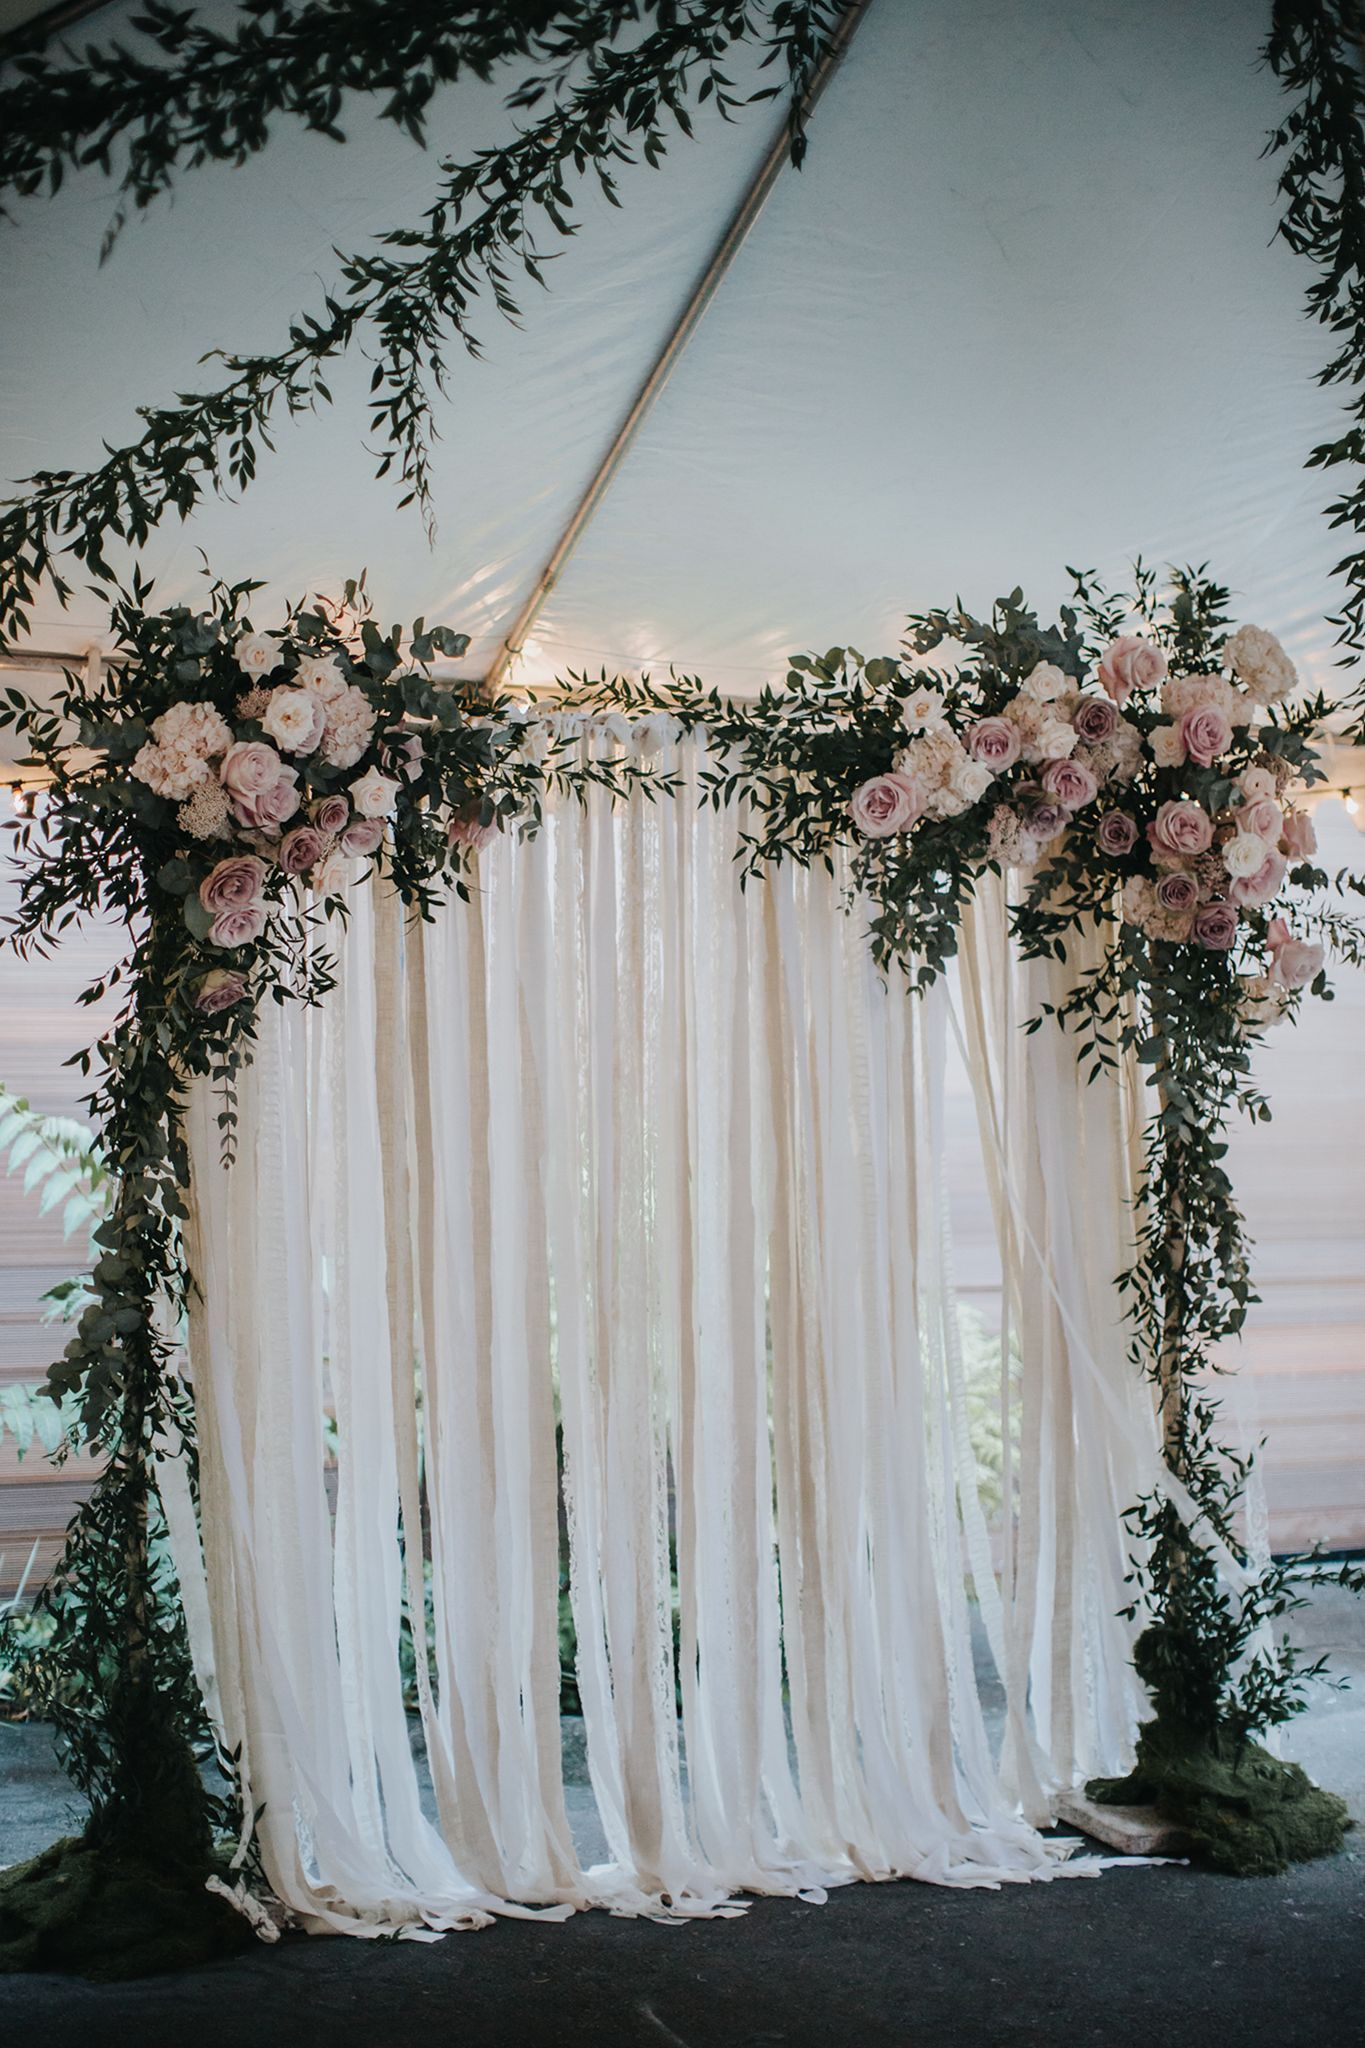 45 Easy Make Wedding Backdrop Ideas That You Can It Self